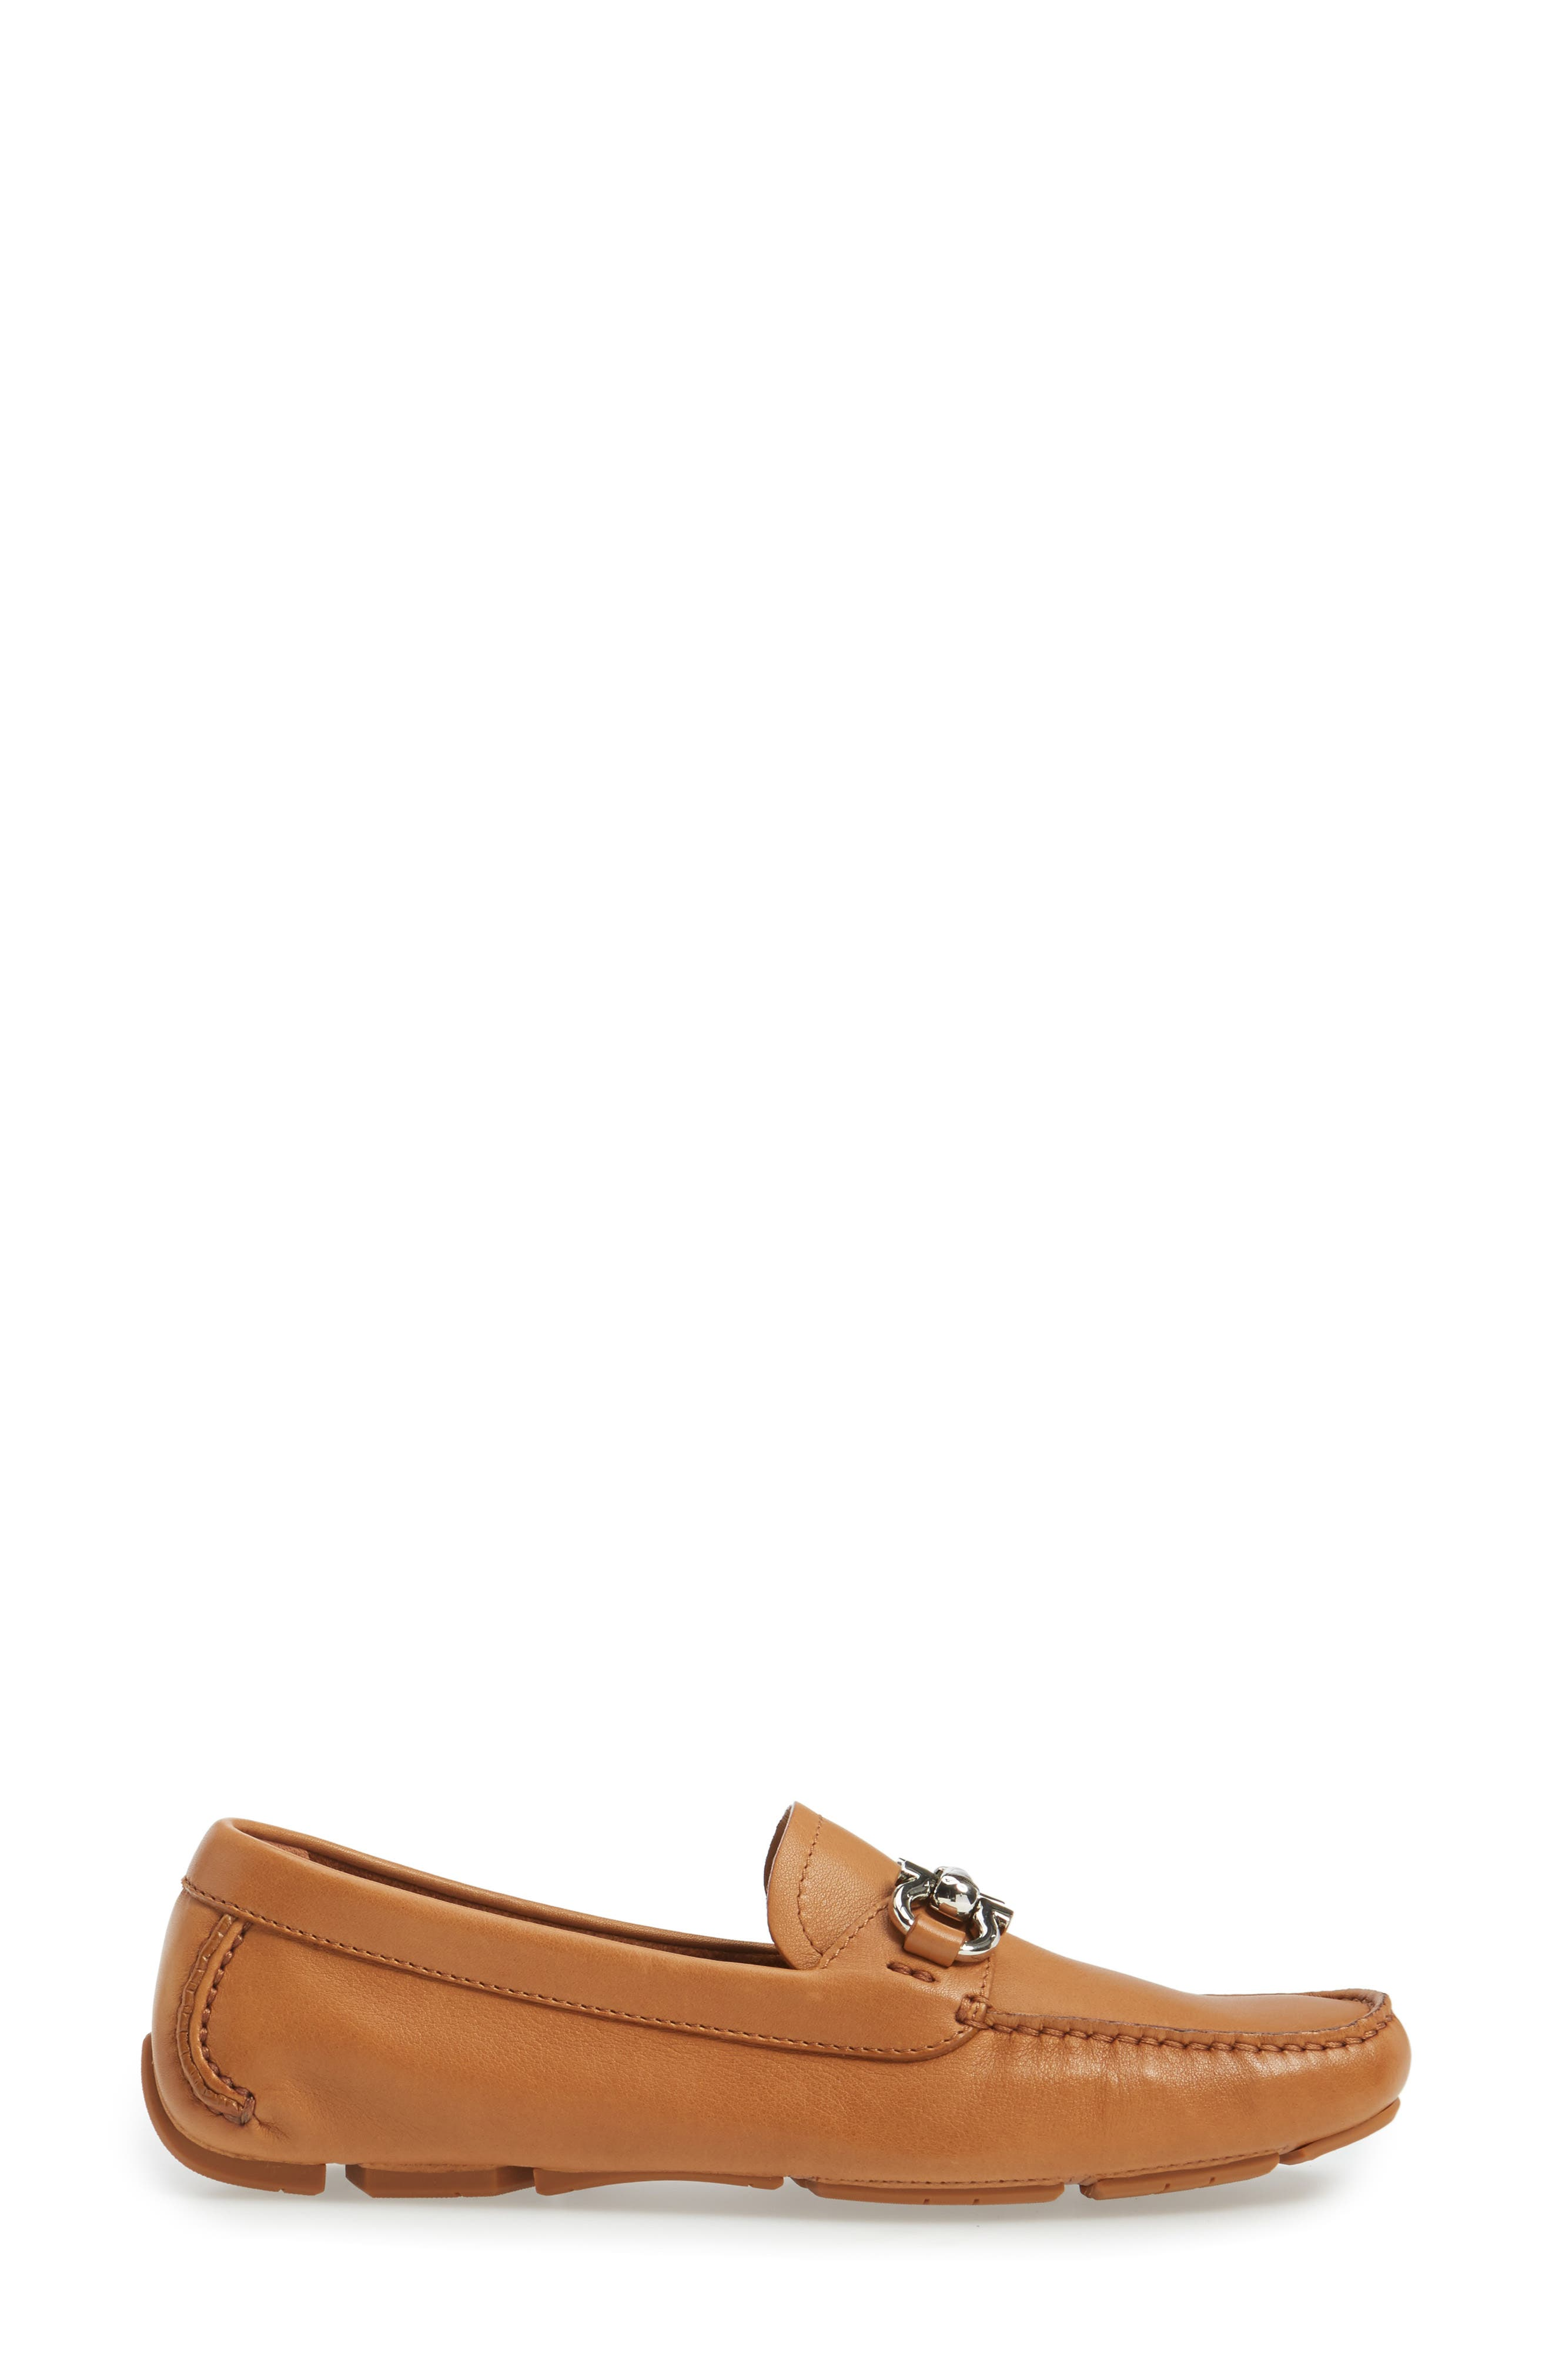 Parigi Loafer,                             Alternate thumbnail 9, color,